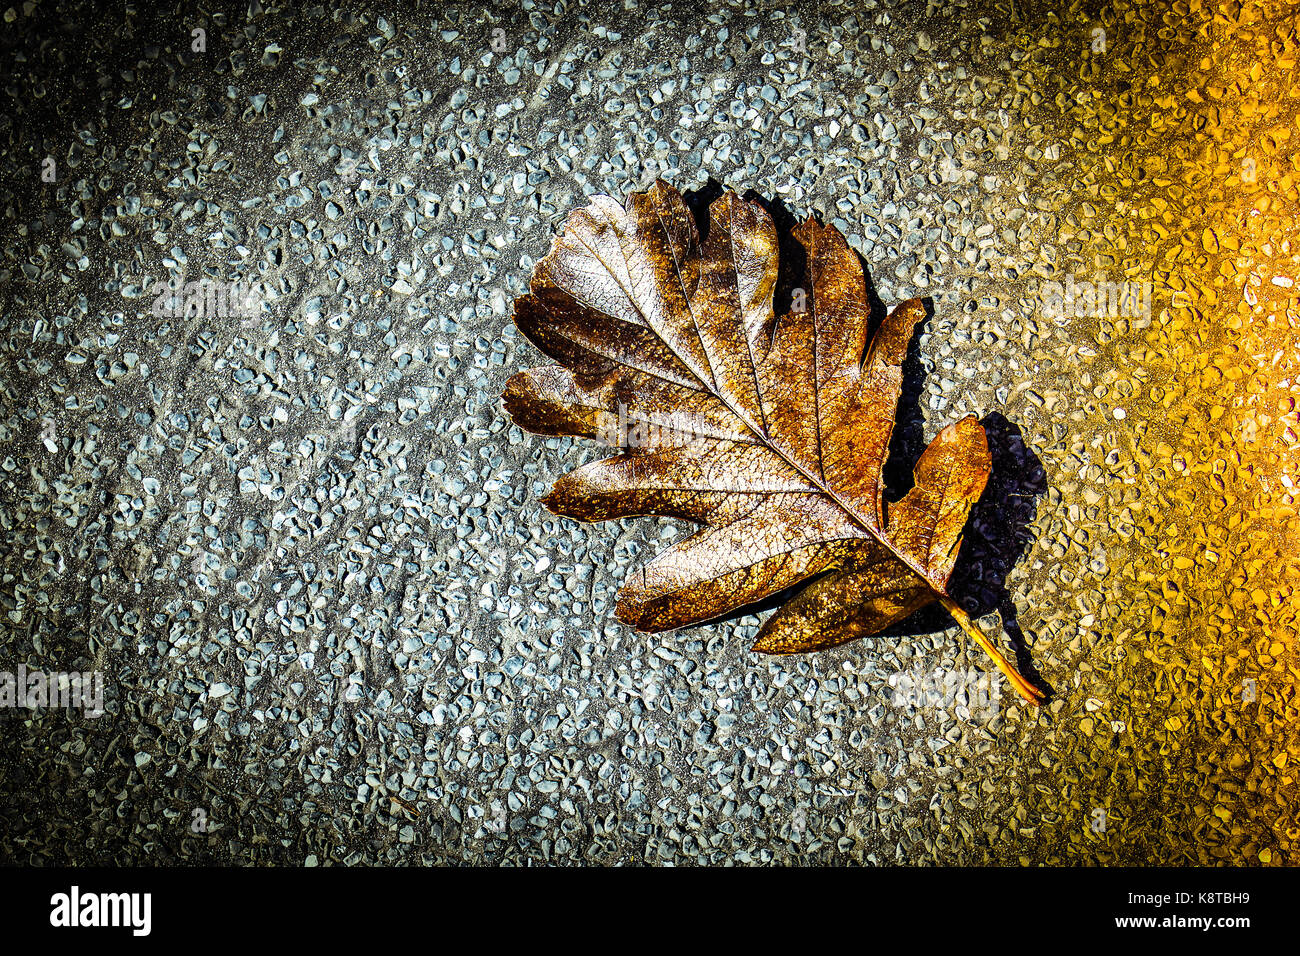 brown leaf resting on tarmac pavement Stock Photo